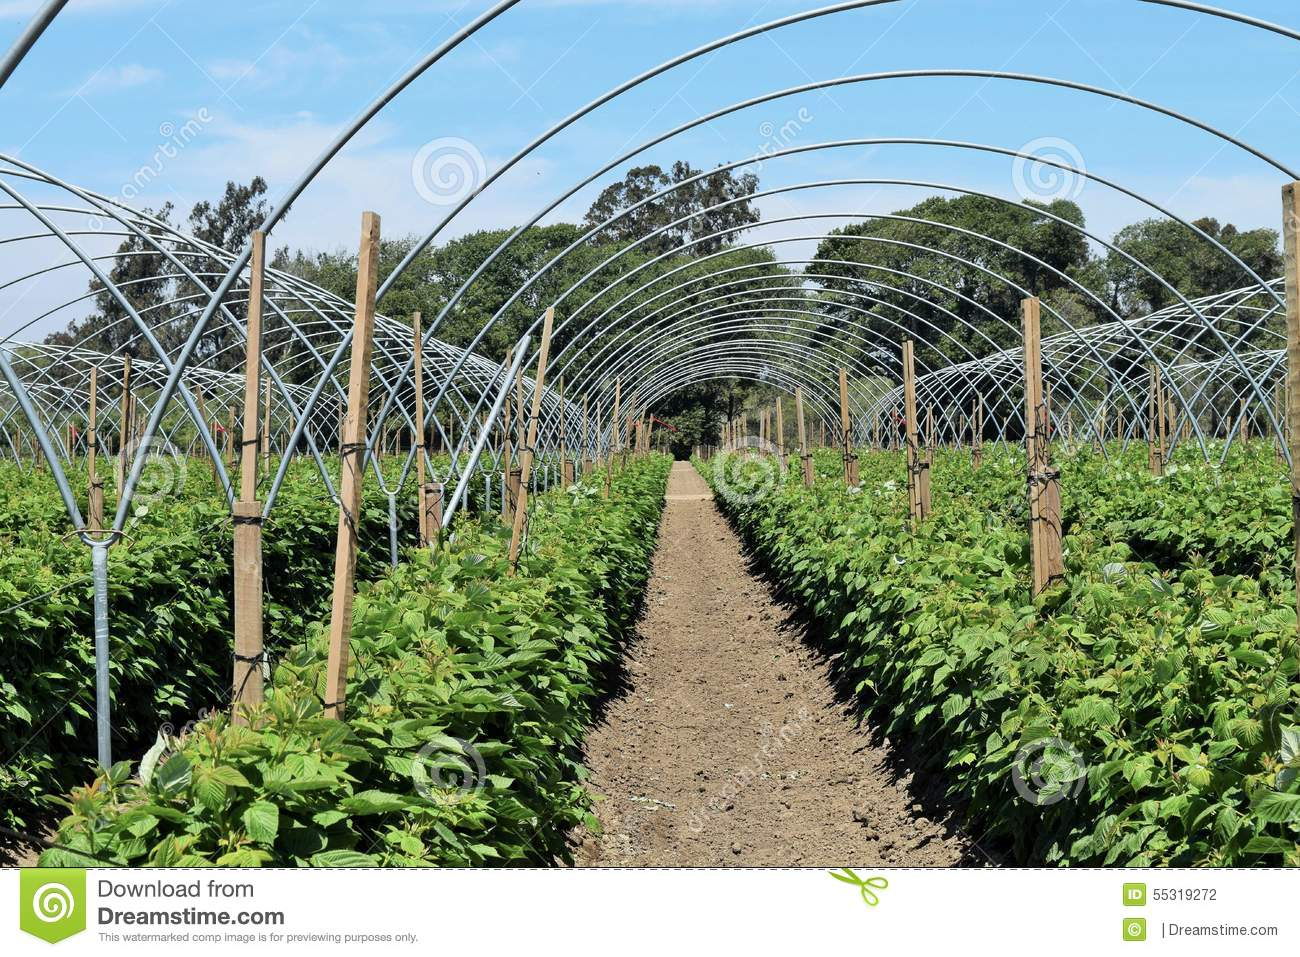 Patterns Of Greenhouse Arches Stock Photo - Image of metal